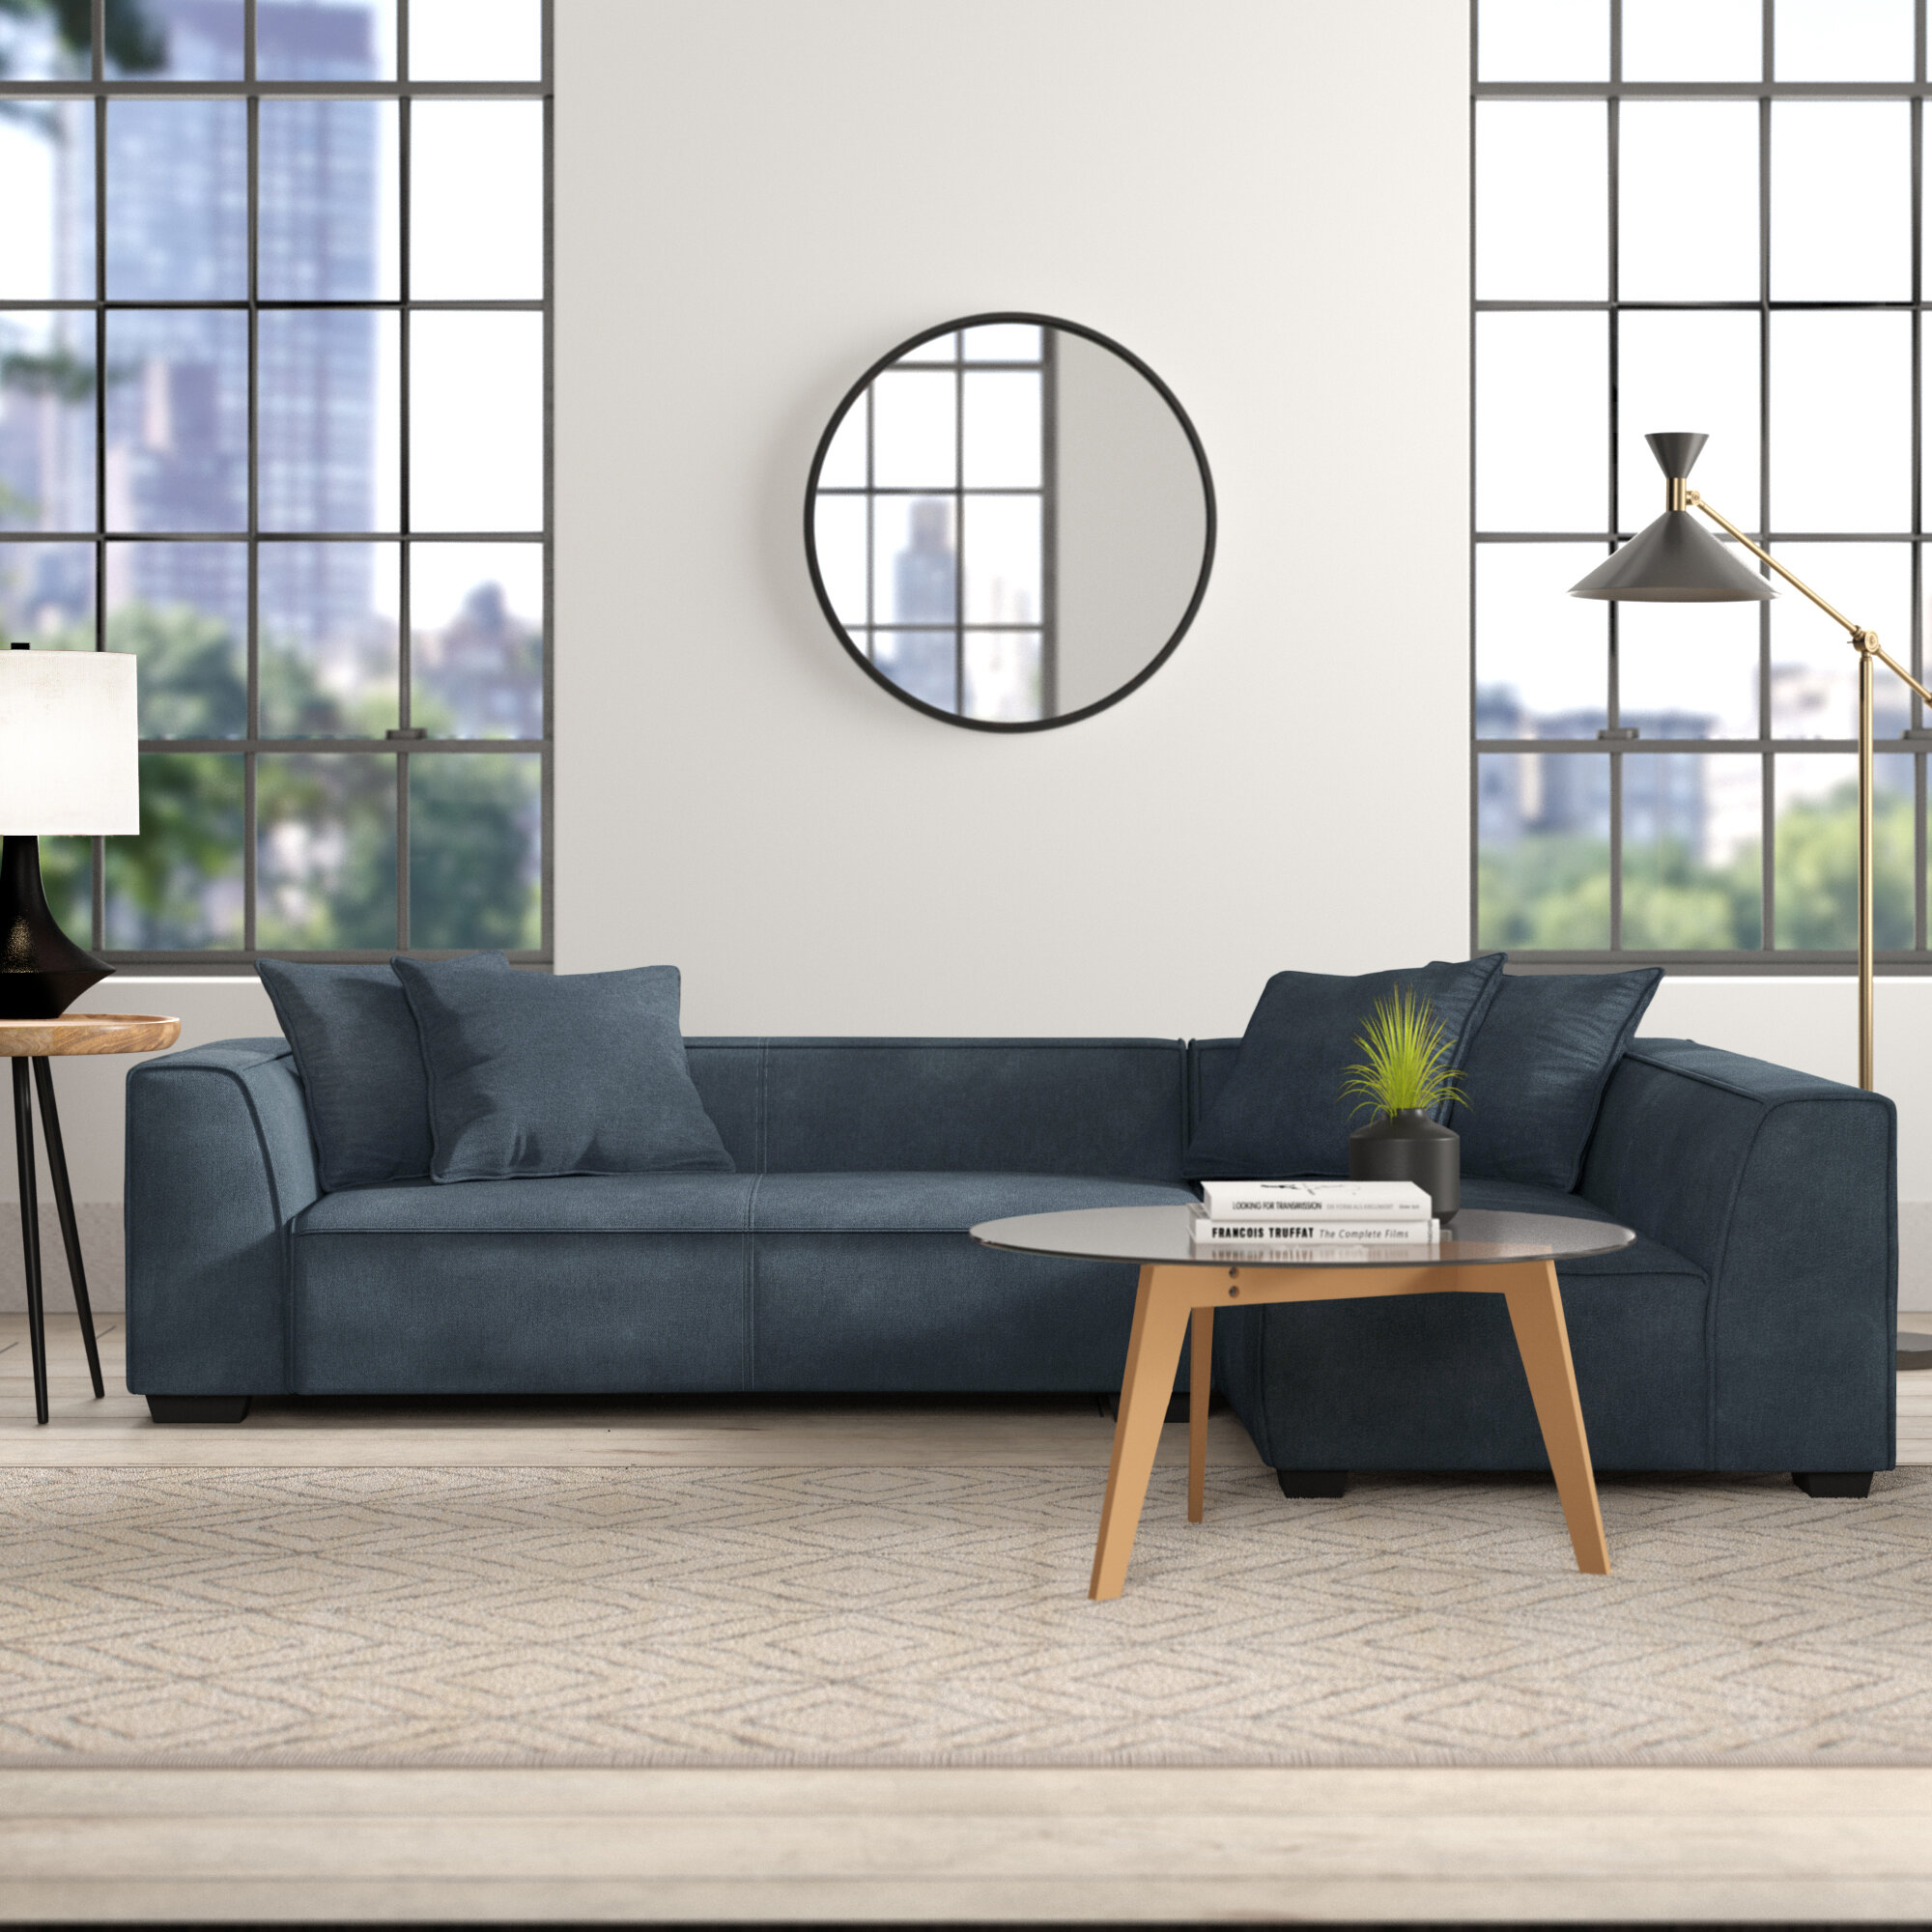 Picture of: Dusty Grey Nolany Reversible Sectional Sofa Couch For Small Apartment L Shape Sofa Couch 3 Seat Sectional Corner Couch Bspsss6no2 Edu In